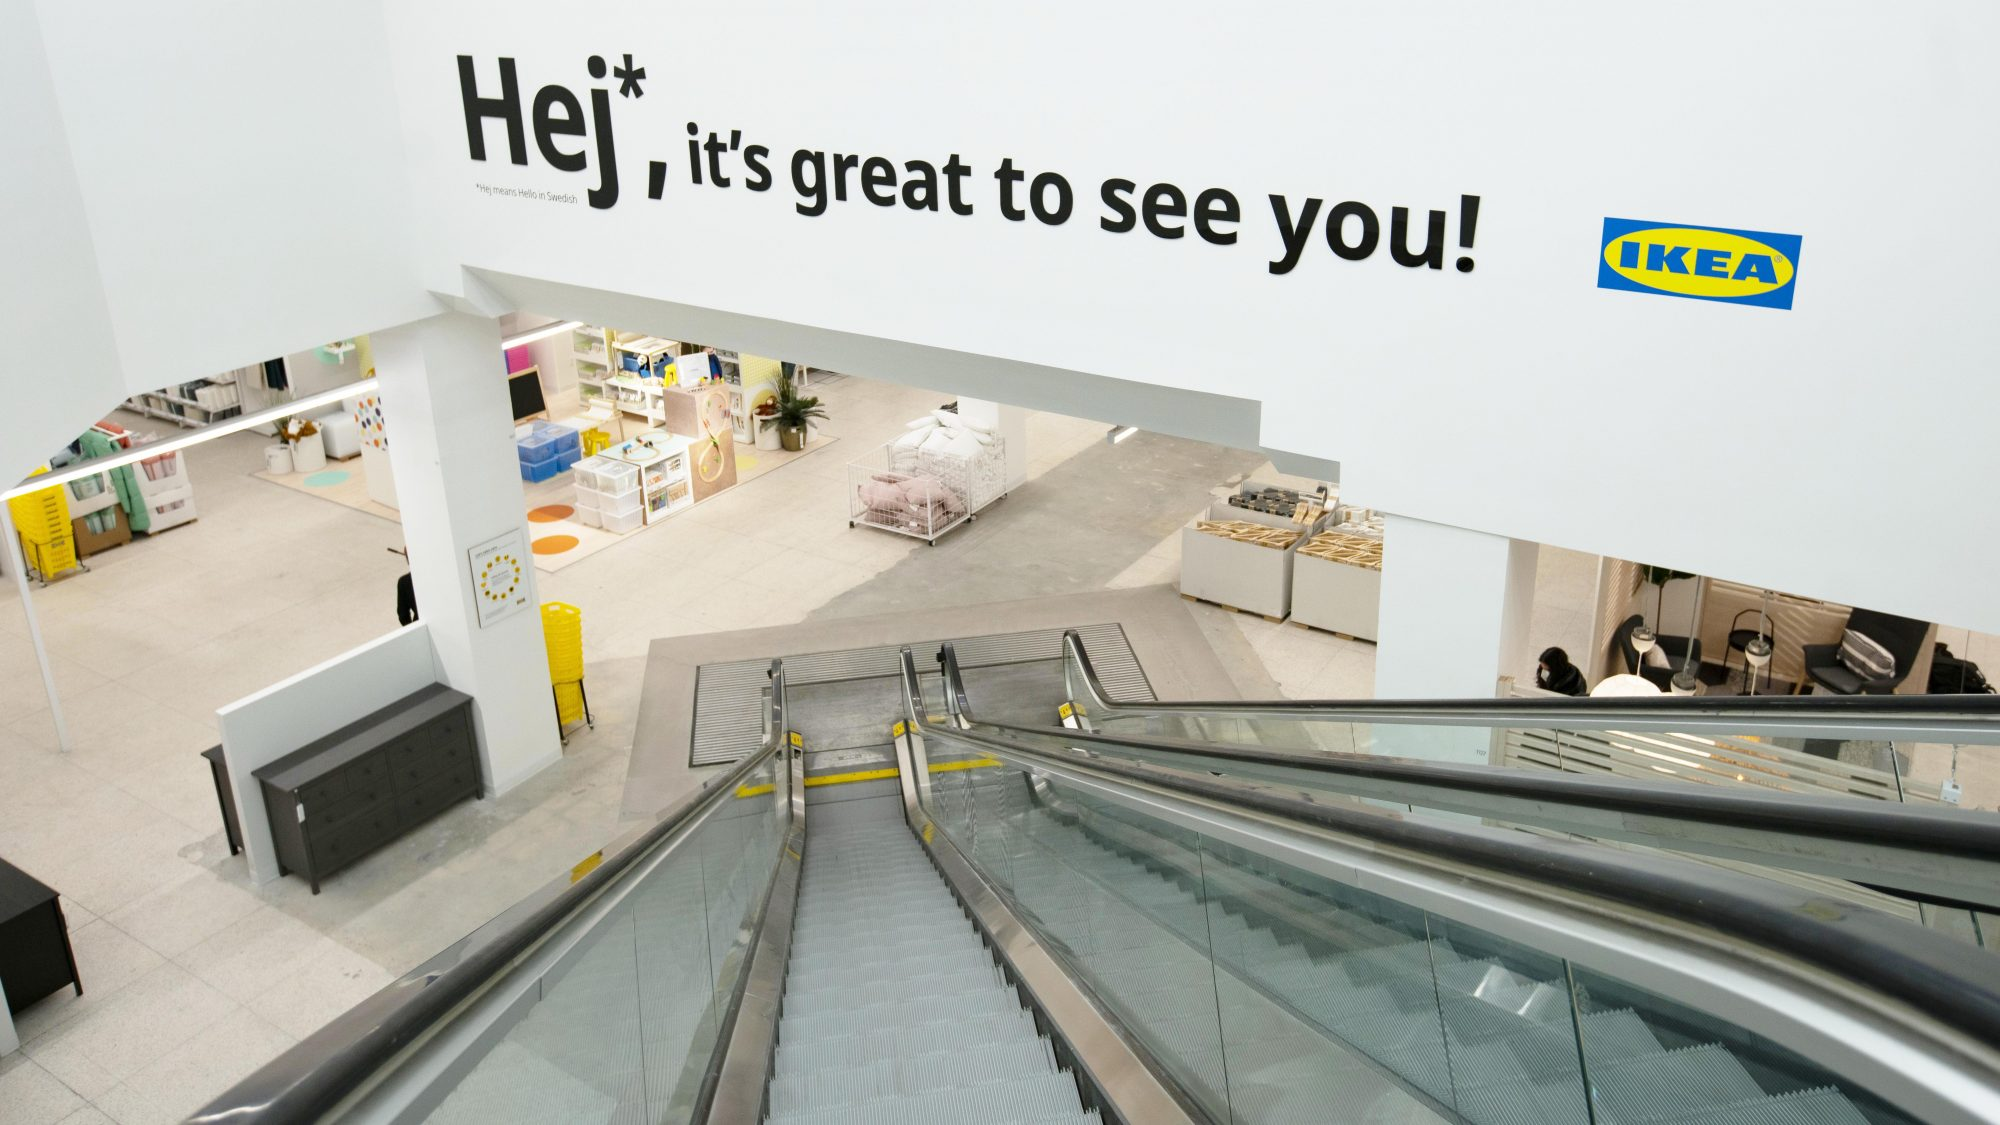 new-ikea-store-queens-small-layout-entrance